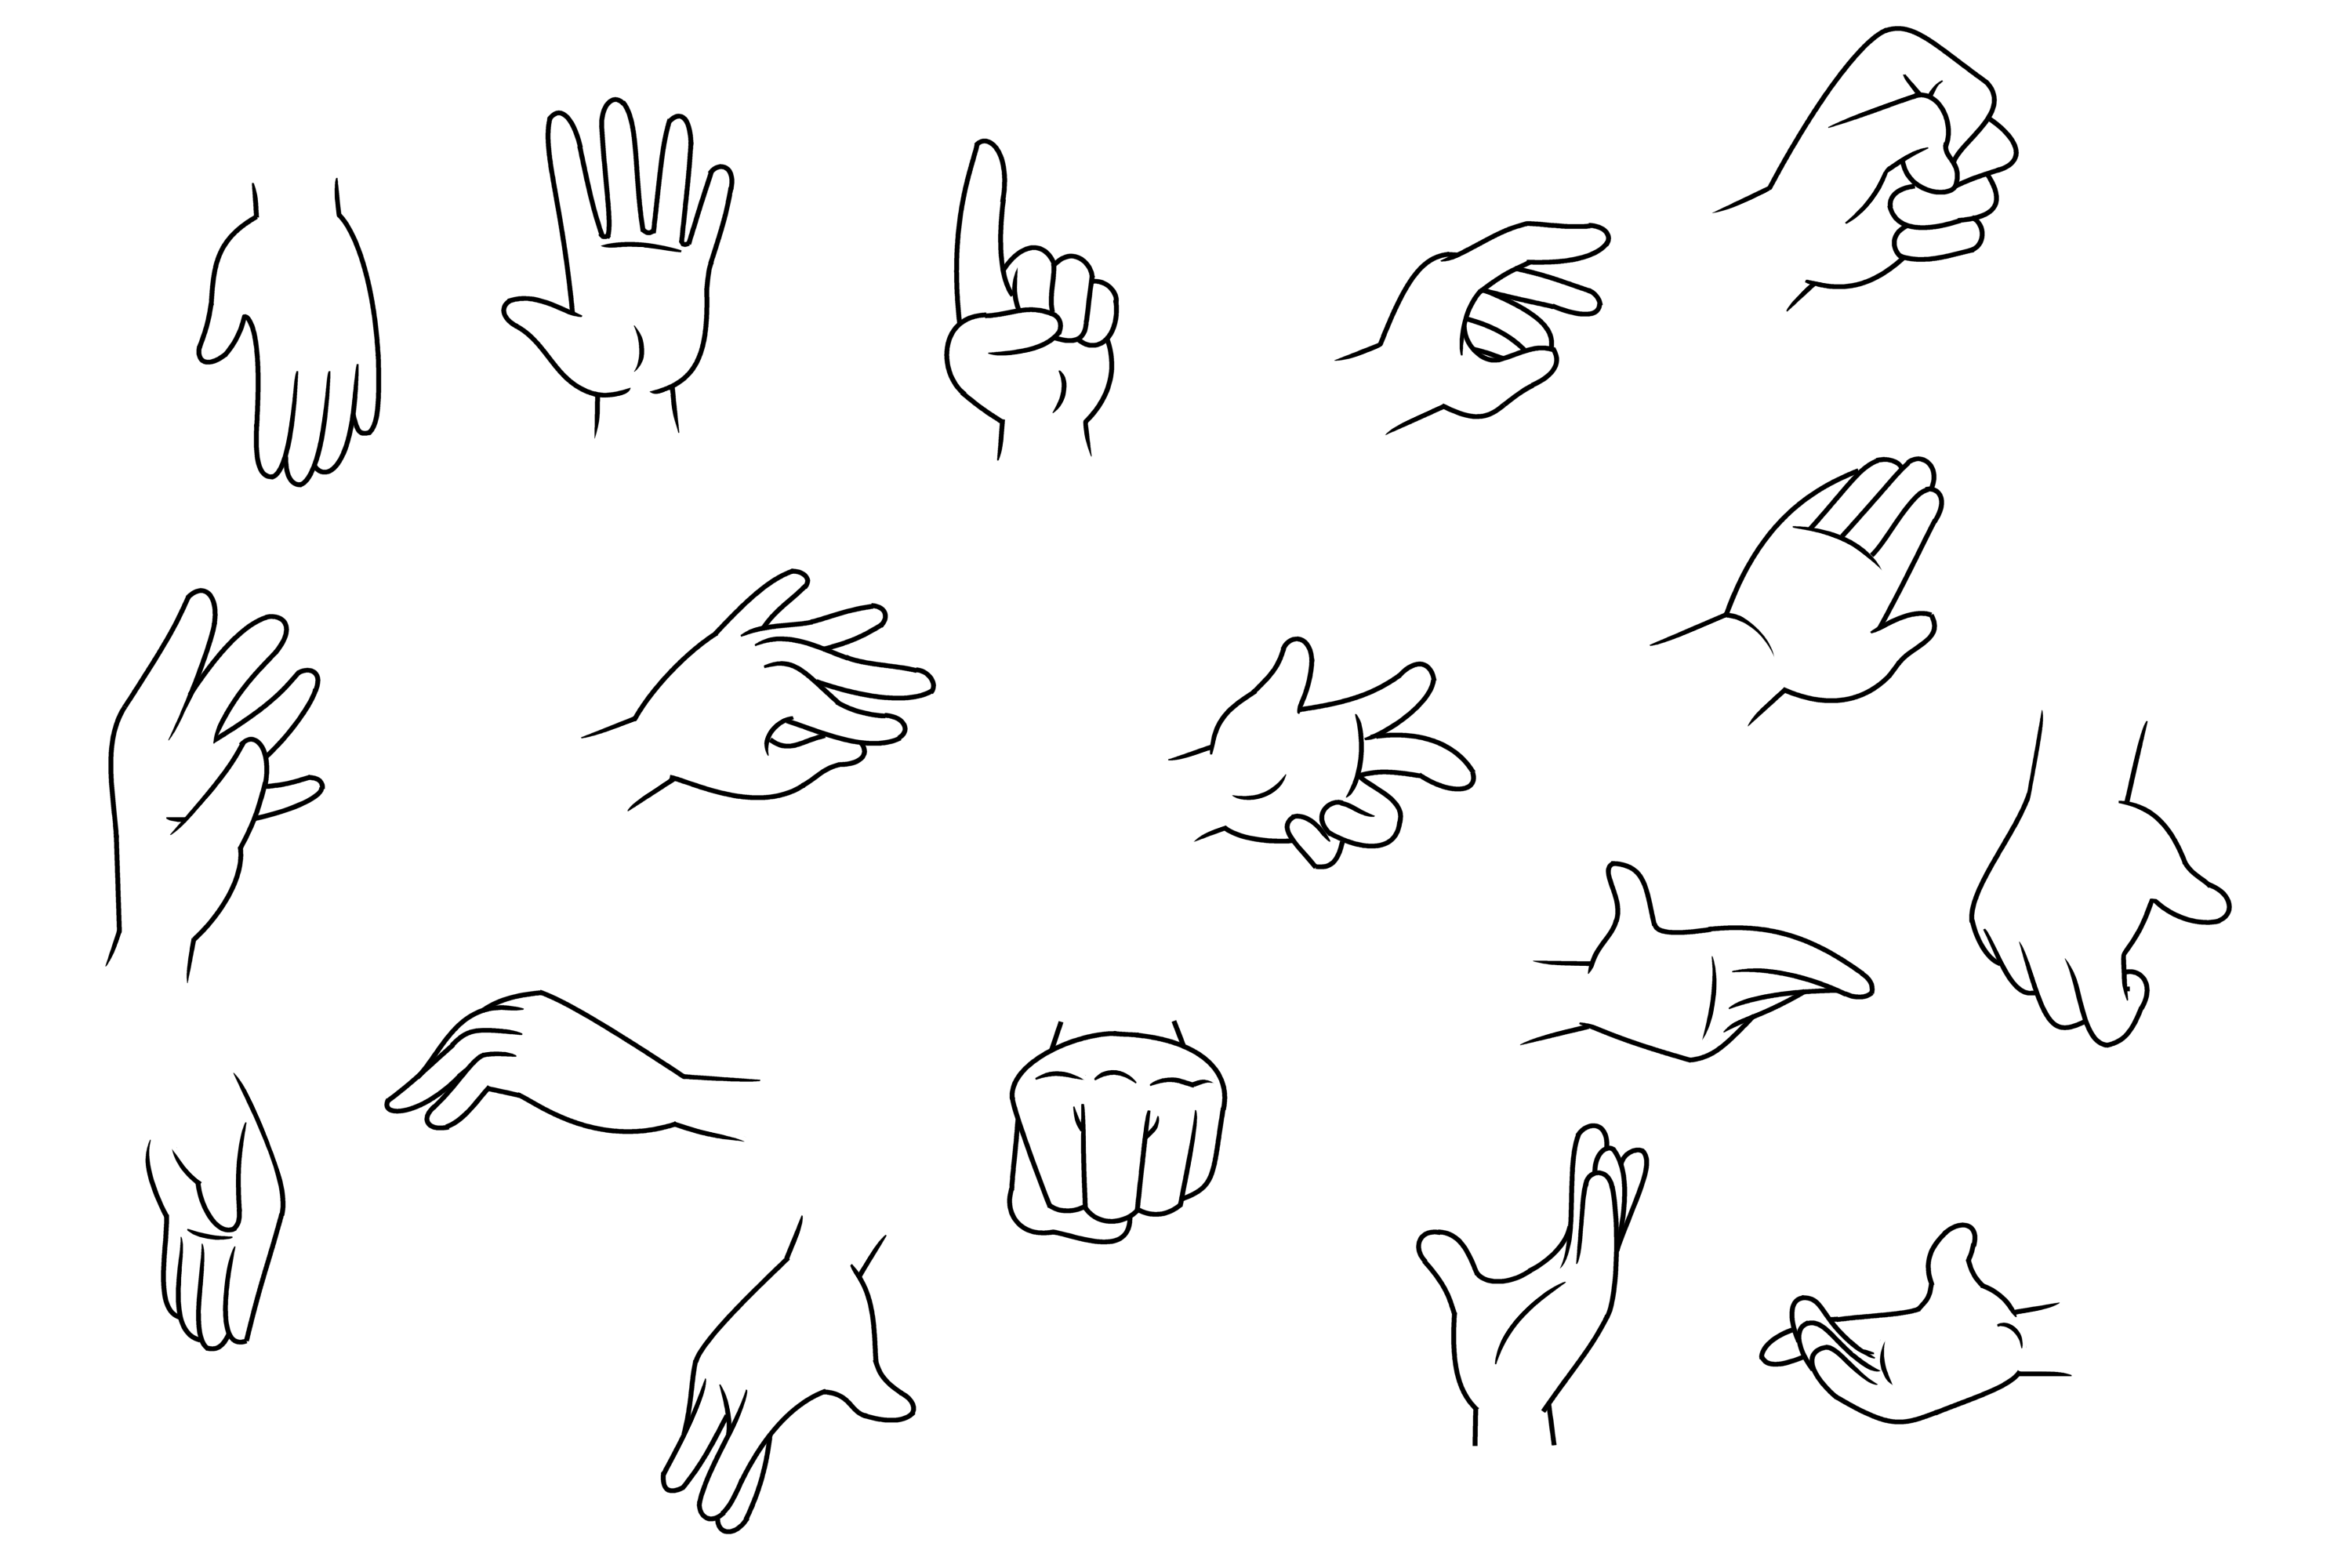 Five finger cartoon hands